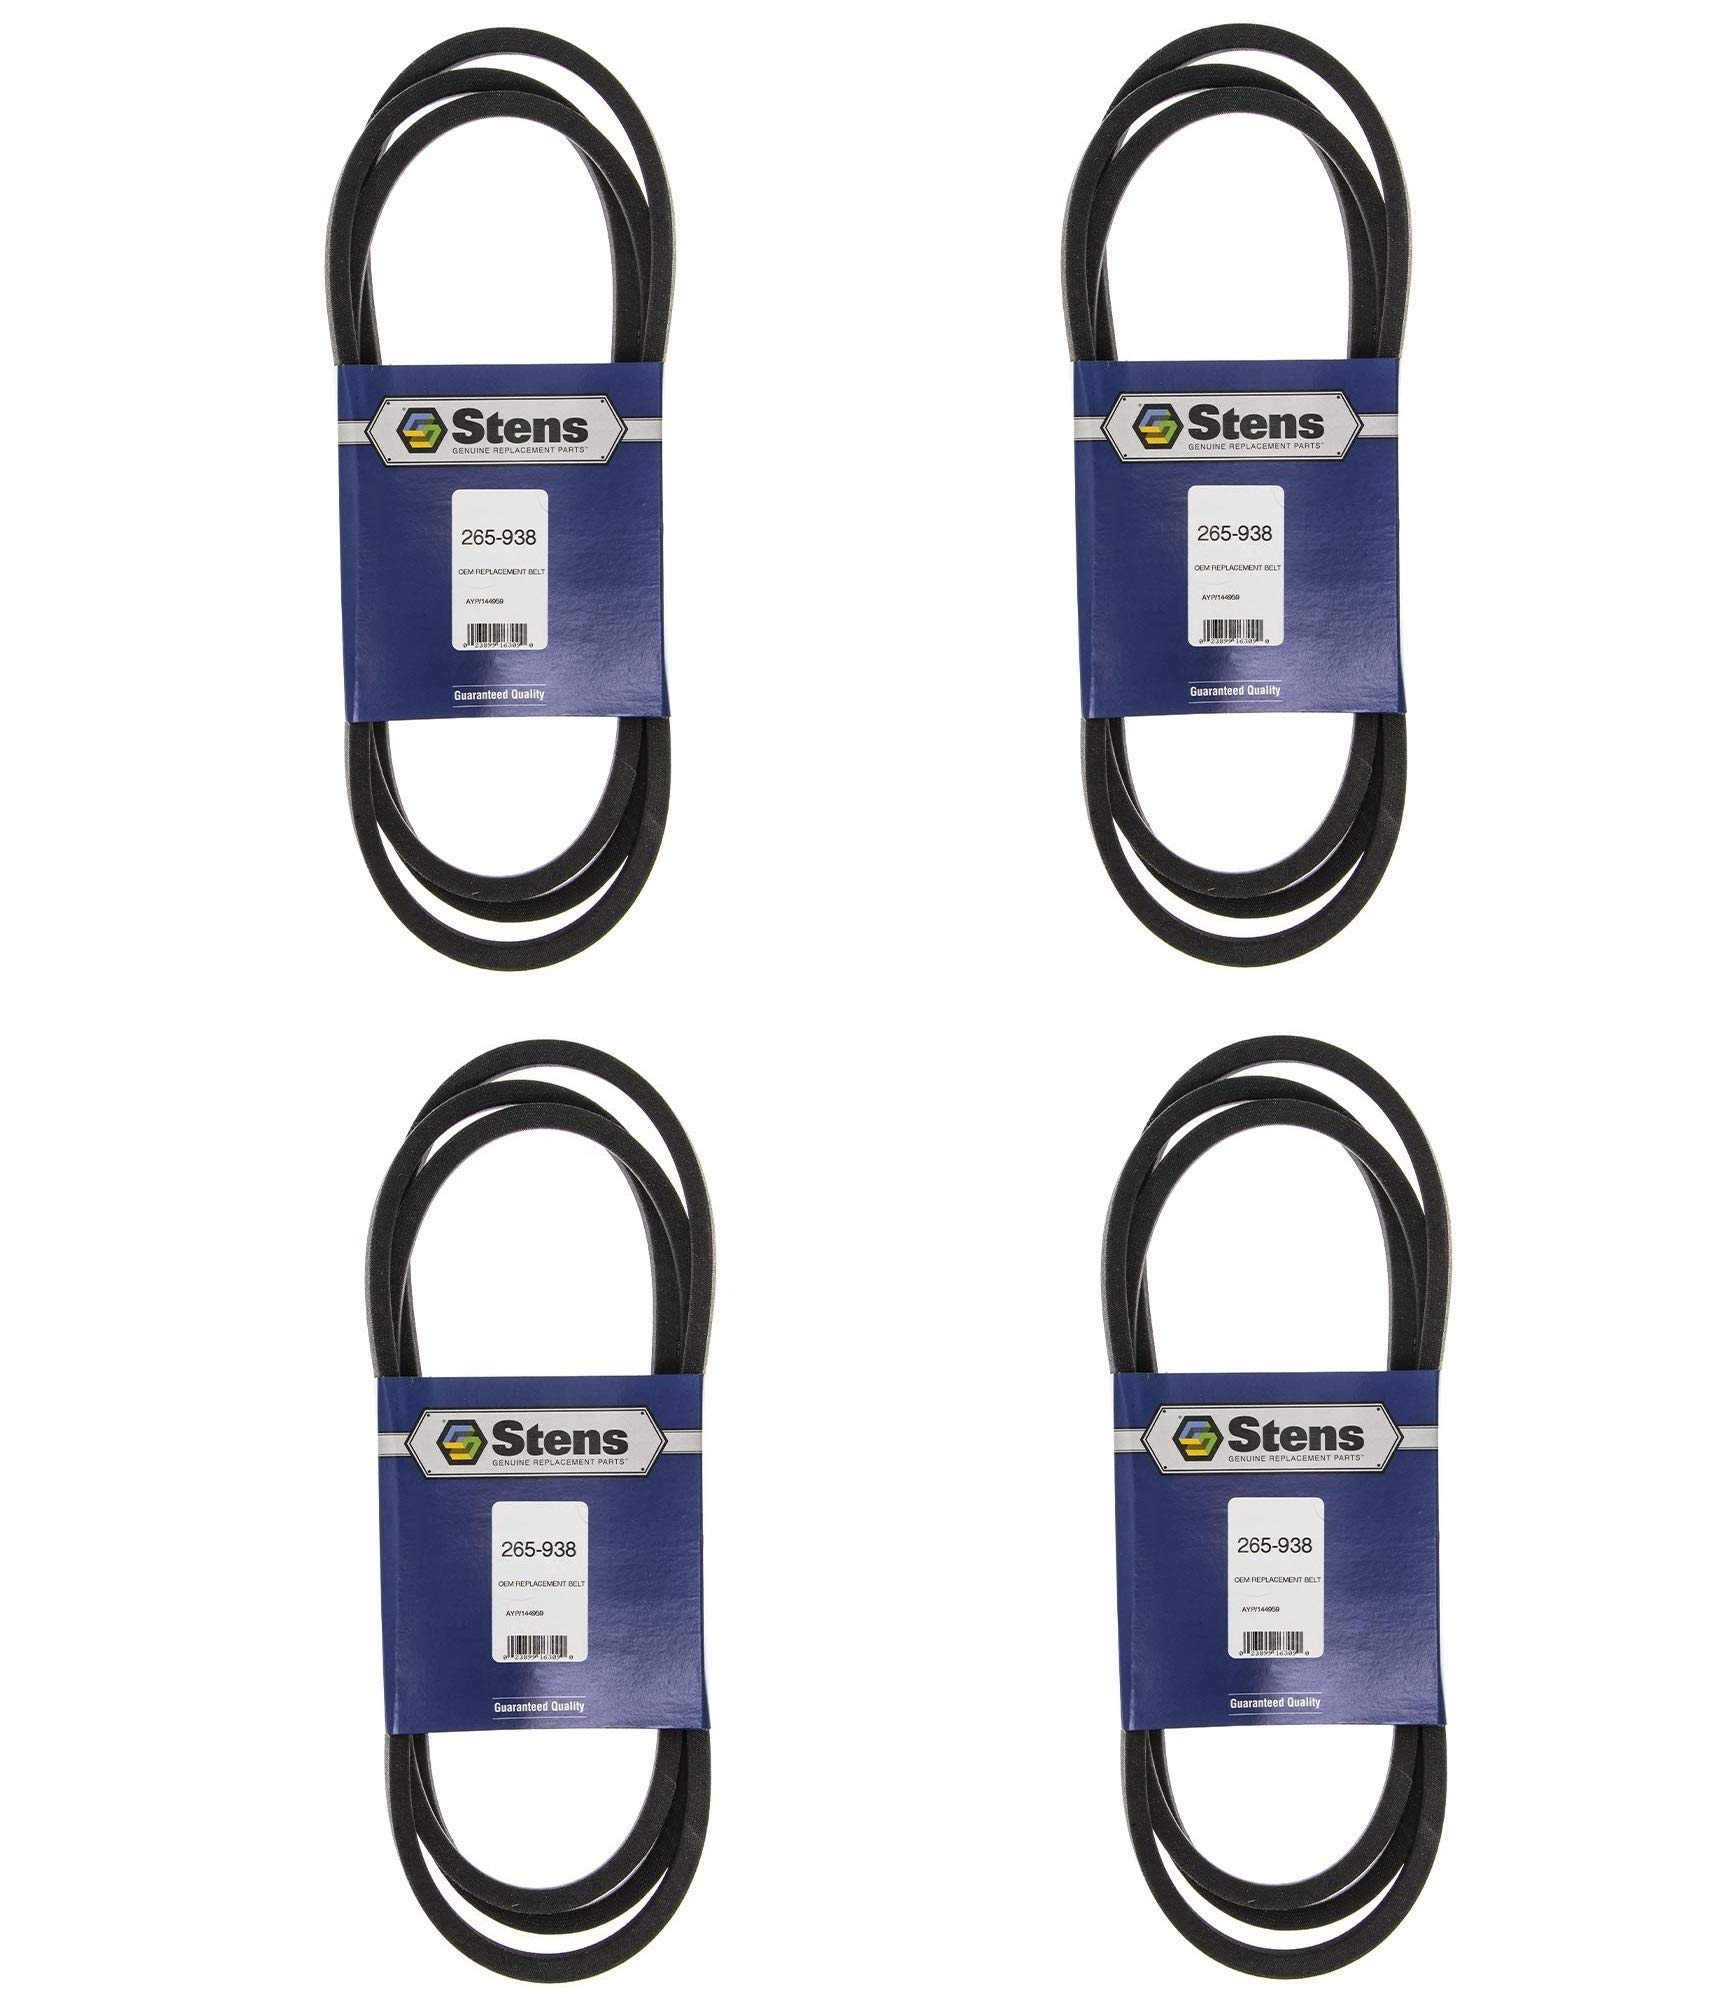 Stens 265-938 Replacement Belt, 95 1/2-Inch (Pack of 4) by Stens